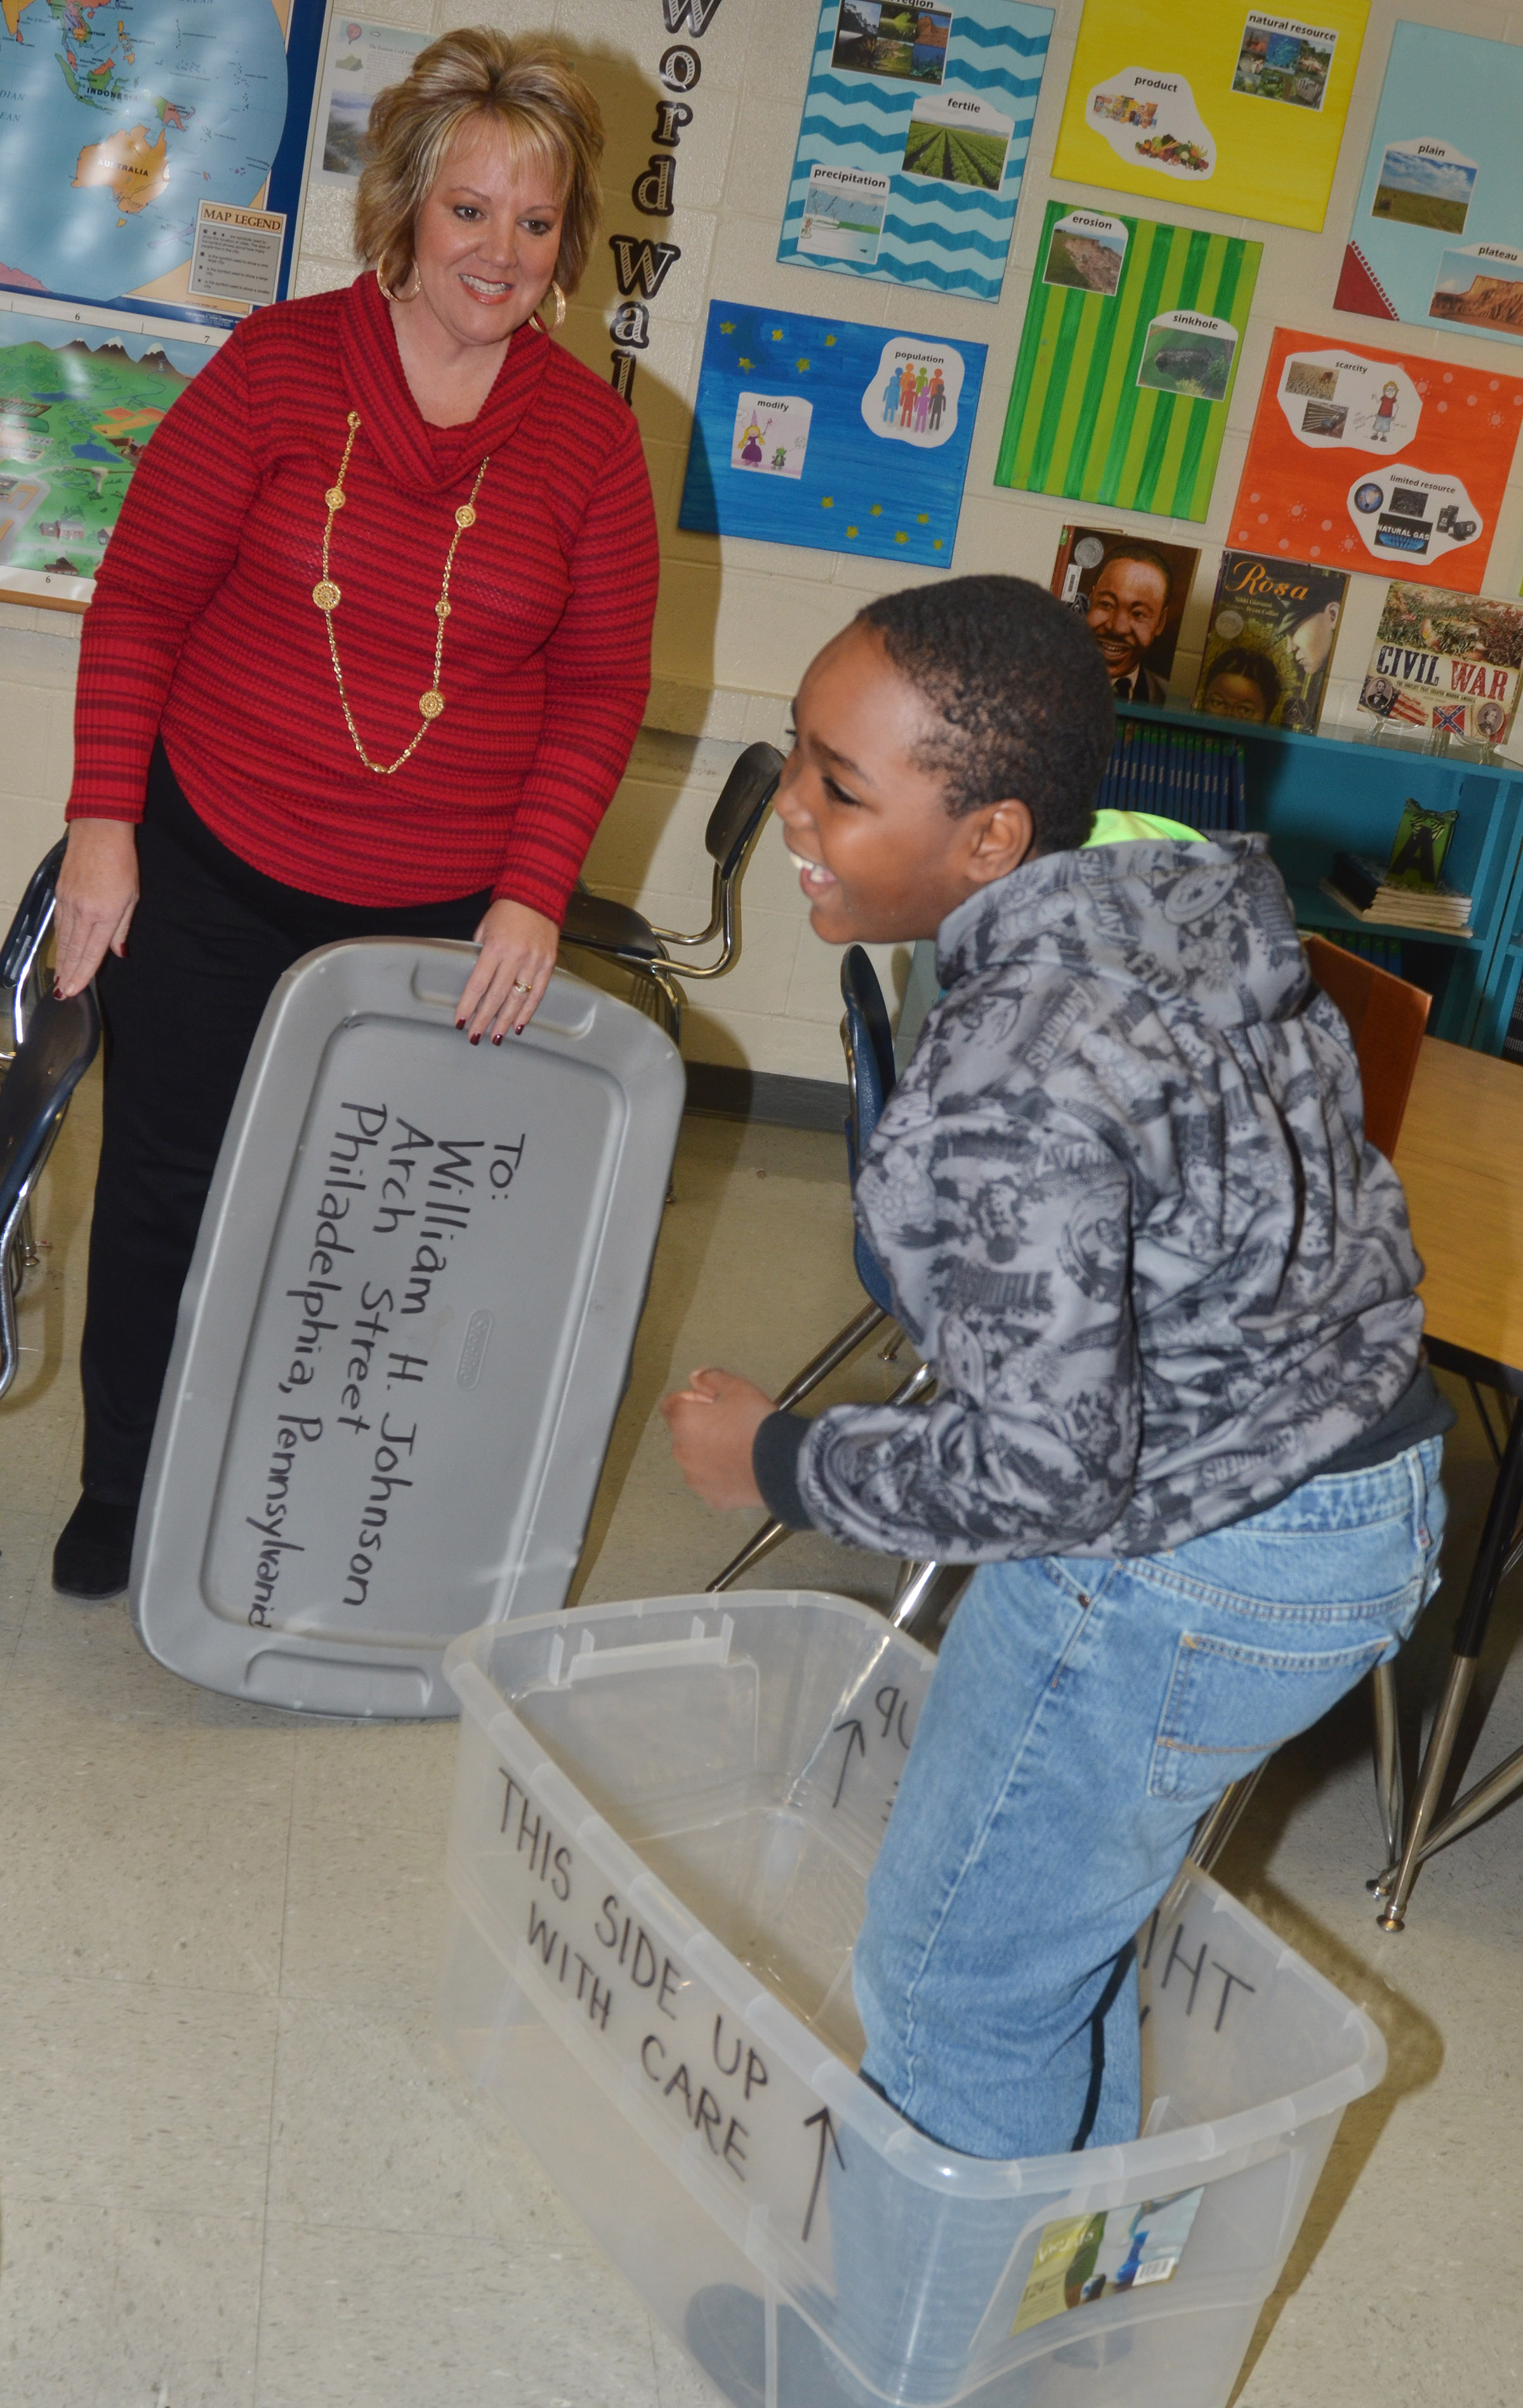 CMS fourth-grader Deason Smith laughs as he tries to fit inside a box like the one Henry Brown used to mail himself to freedom, as social studies teacher Kaye Agathen watches.